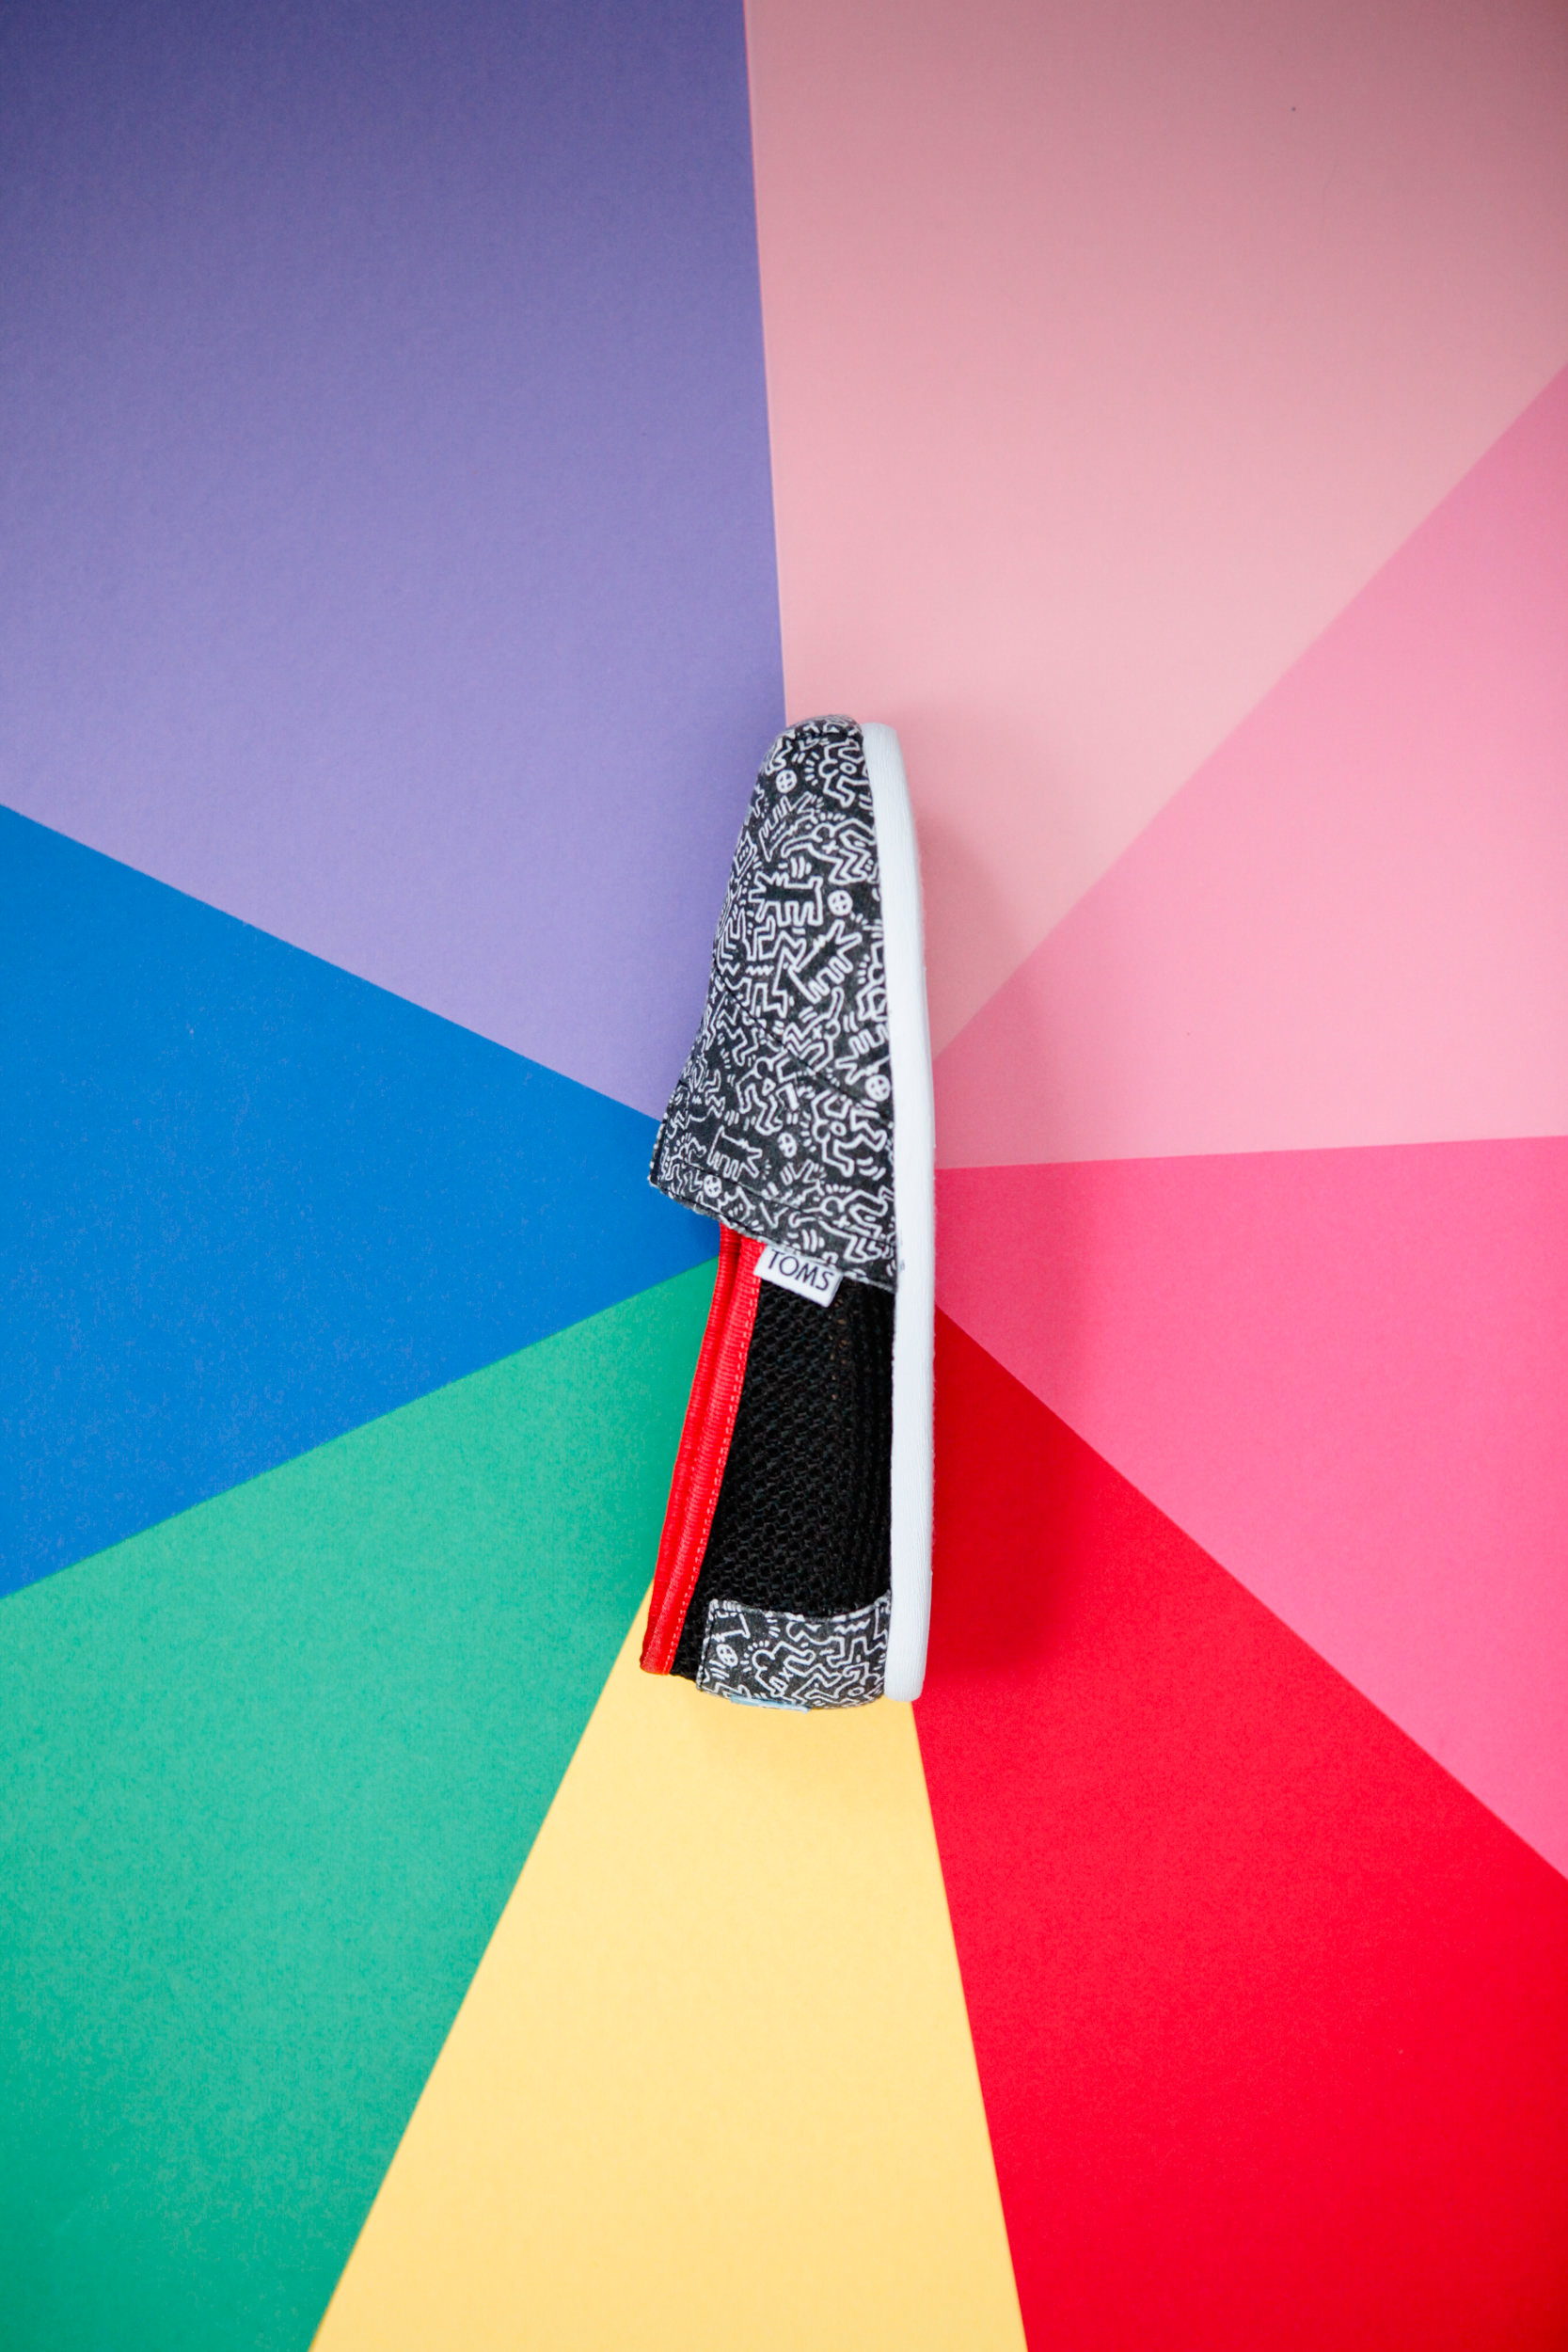 One For One And Art For All Toms Celebrates Keith Haring